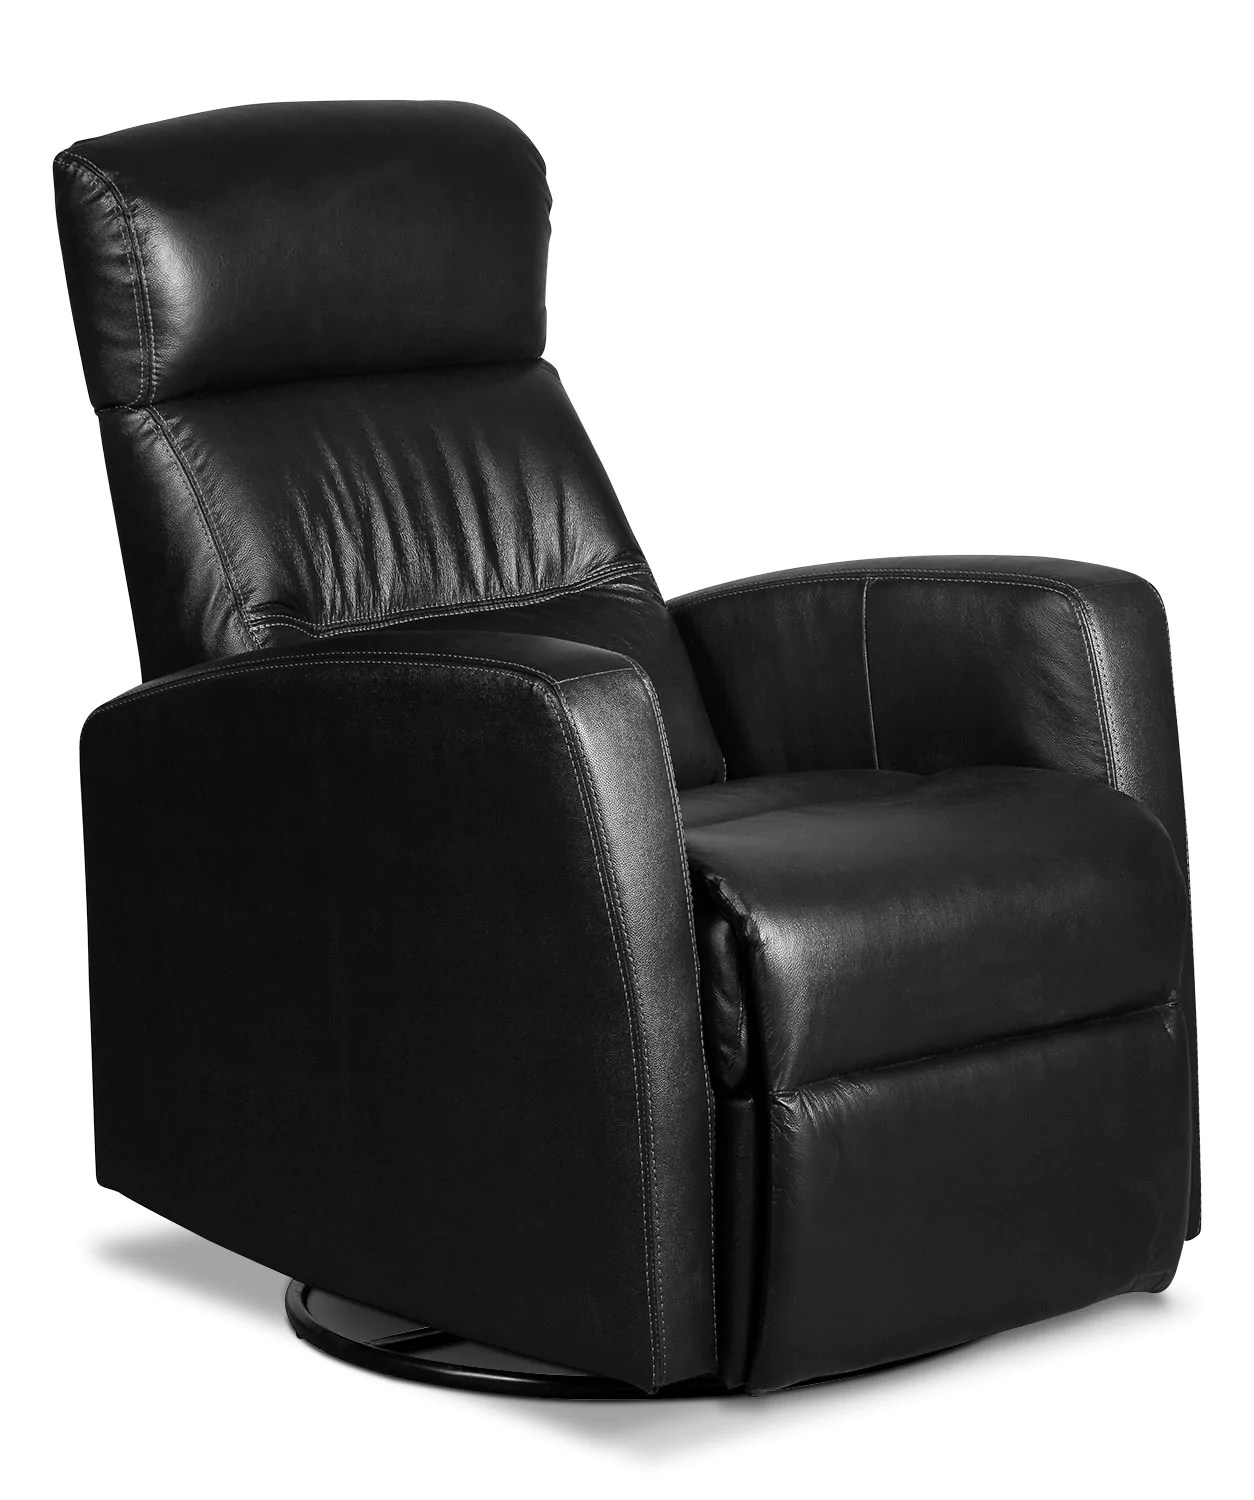 Swivel Rocker Recliner Chair Penny Genuine Leather Swivel Rocker Reclining Chair Black